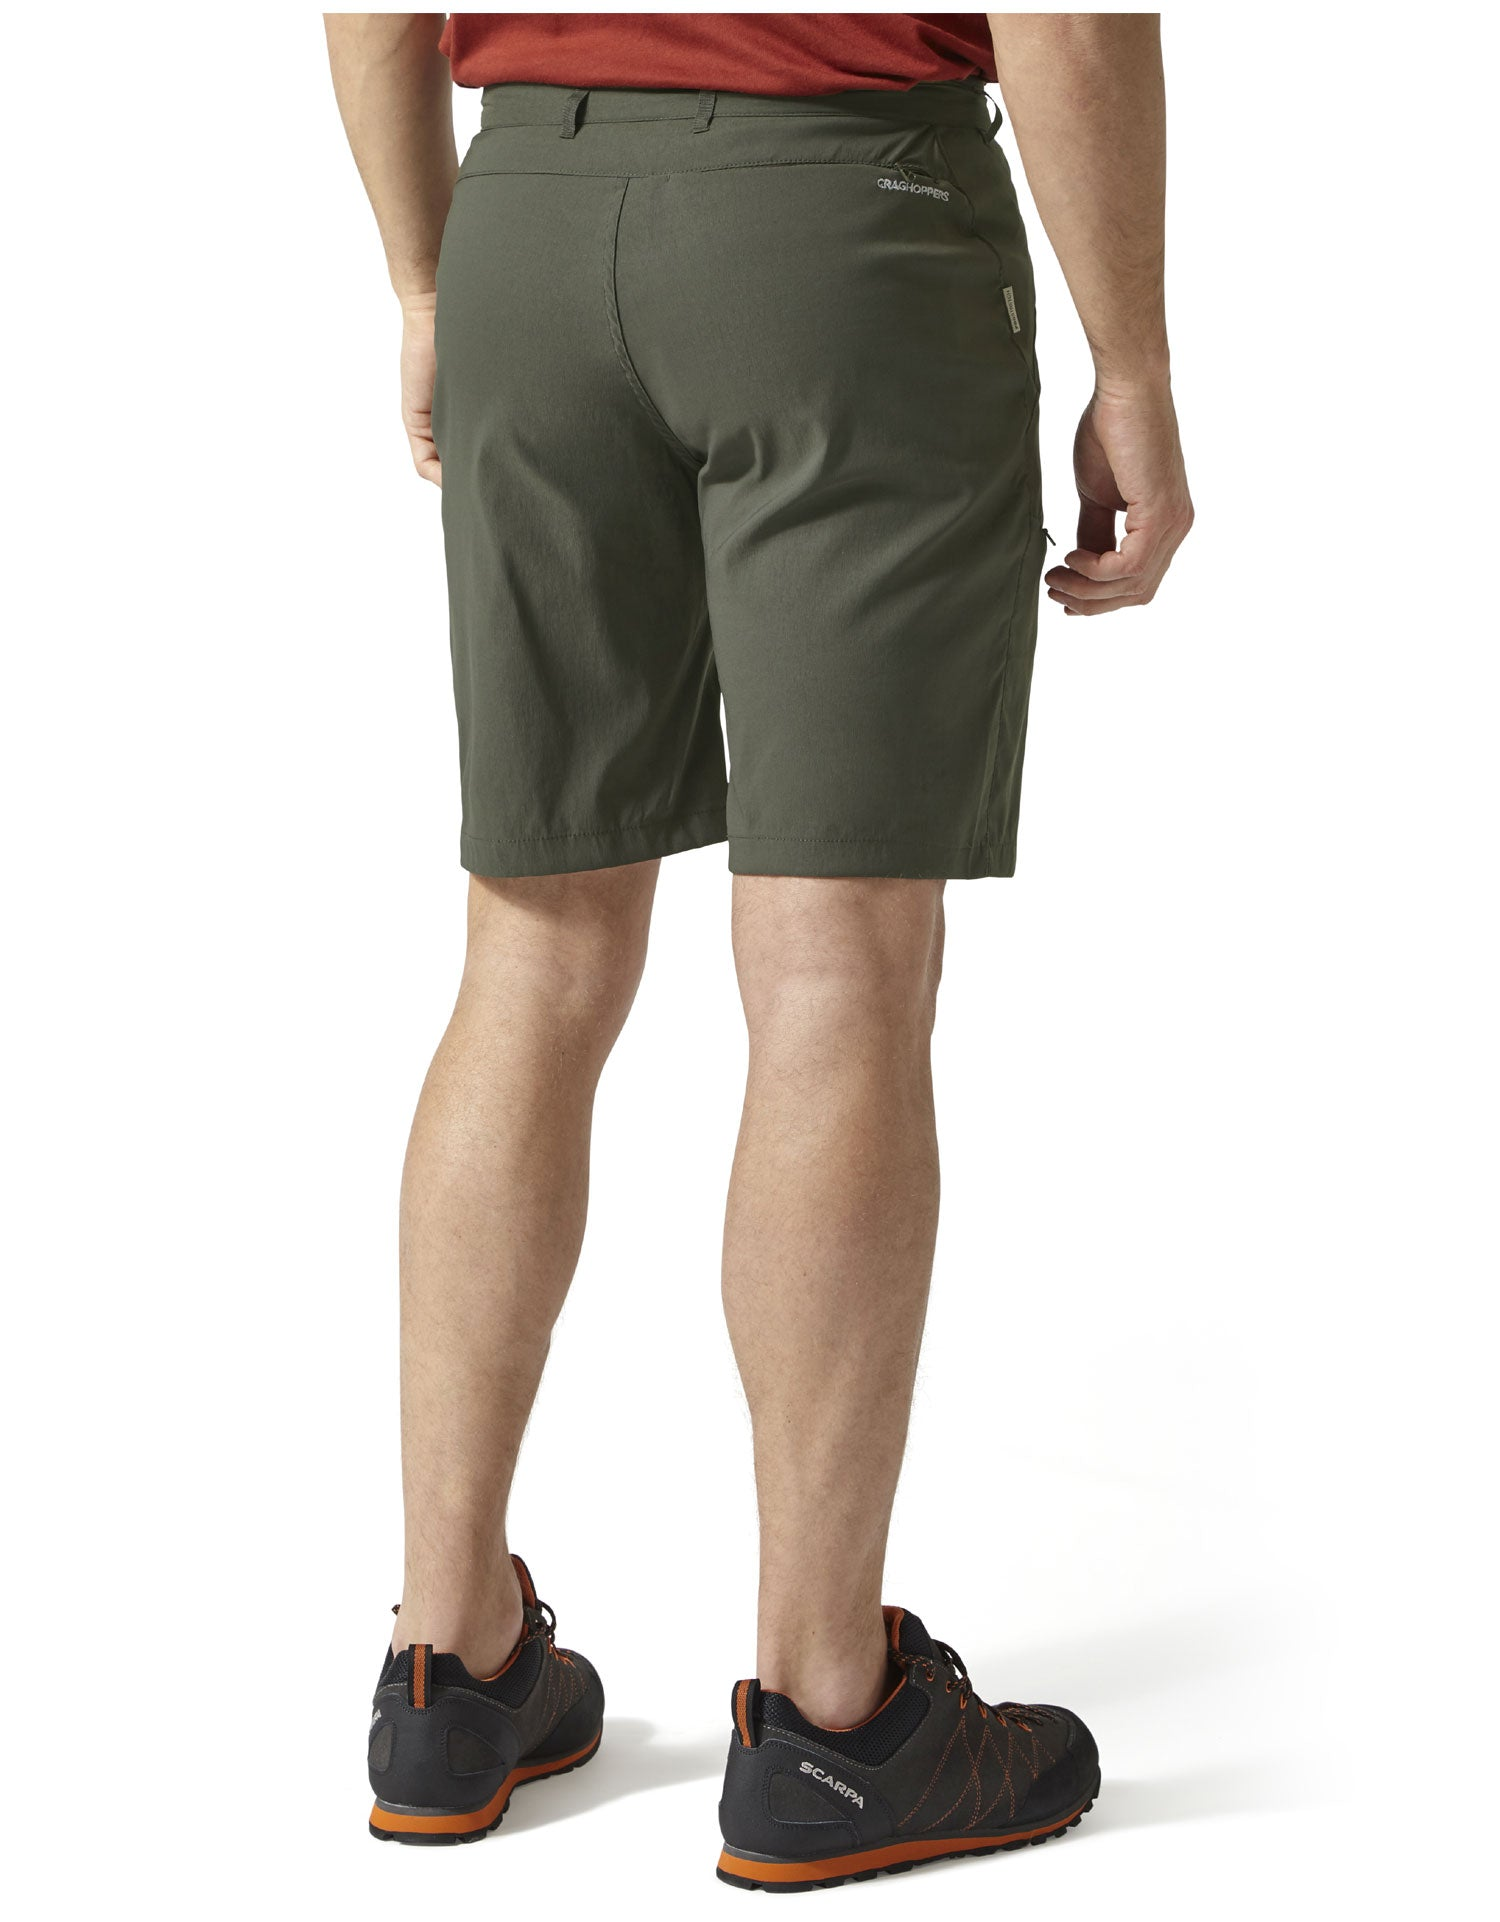 rear view Men's Kiwi Pro Shorts by Craghoppers